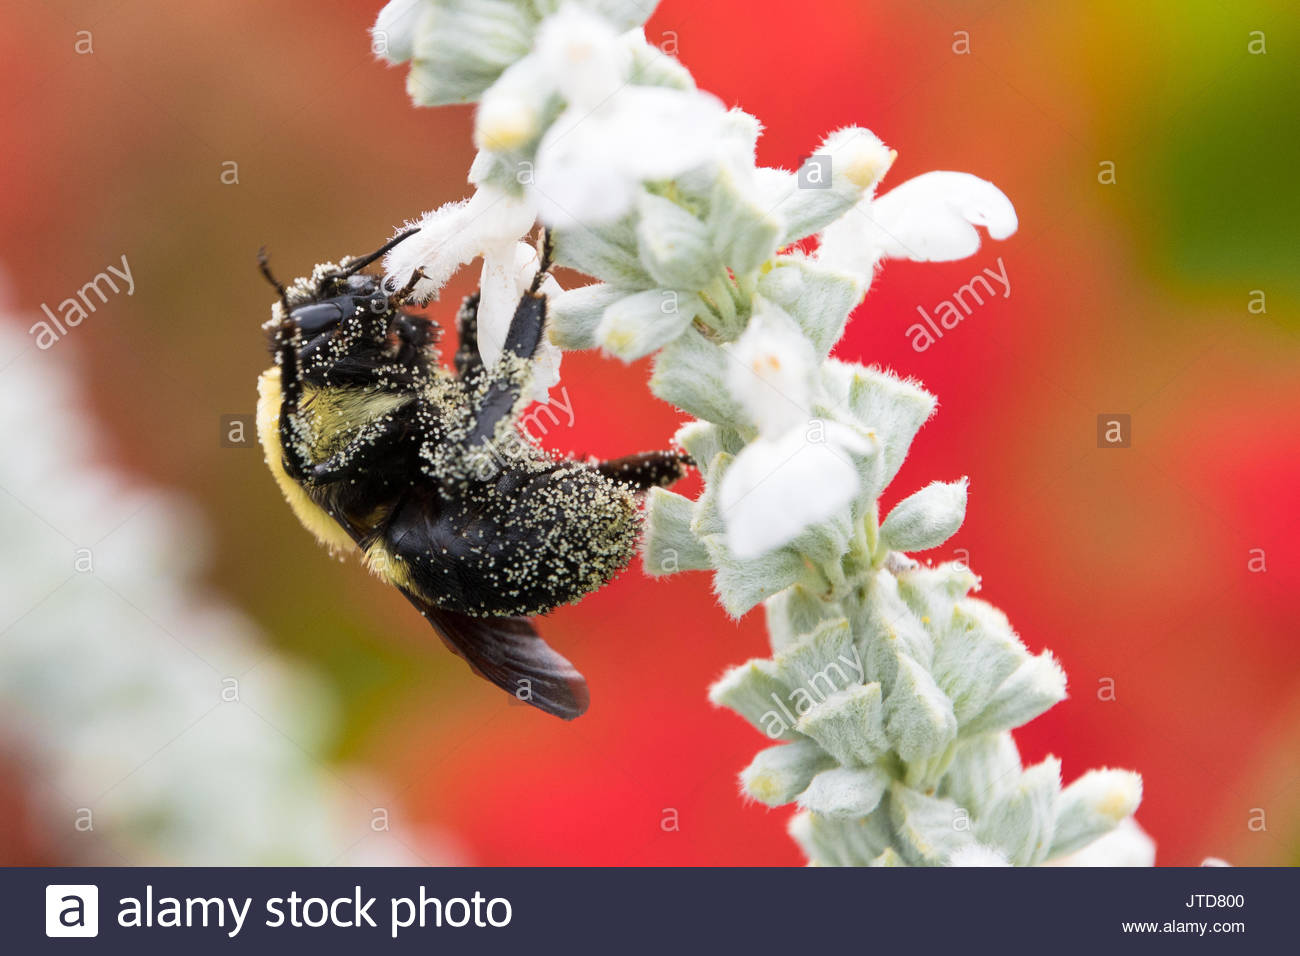 Pollinating bee insect in a white and red flowers garden in the city - Stock Image